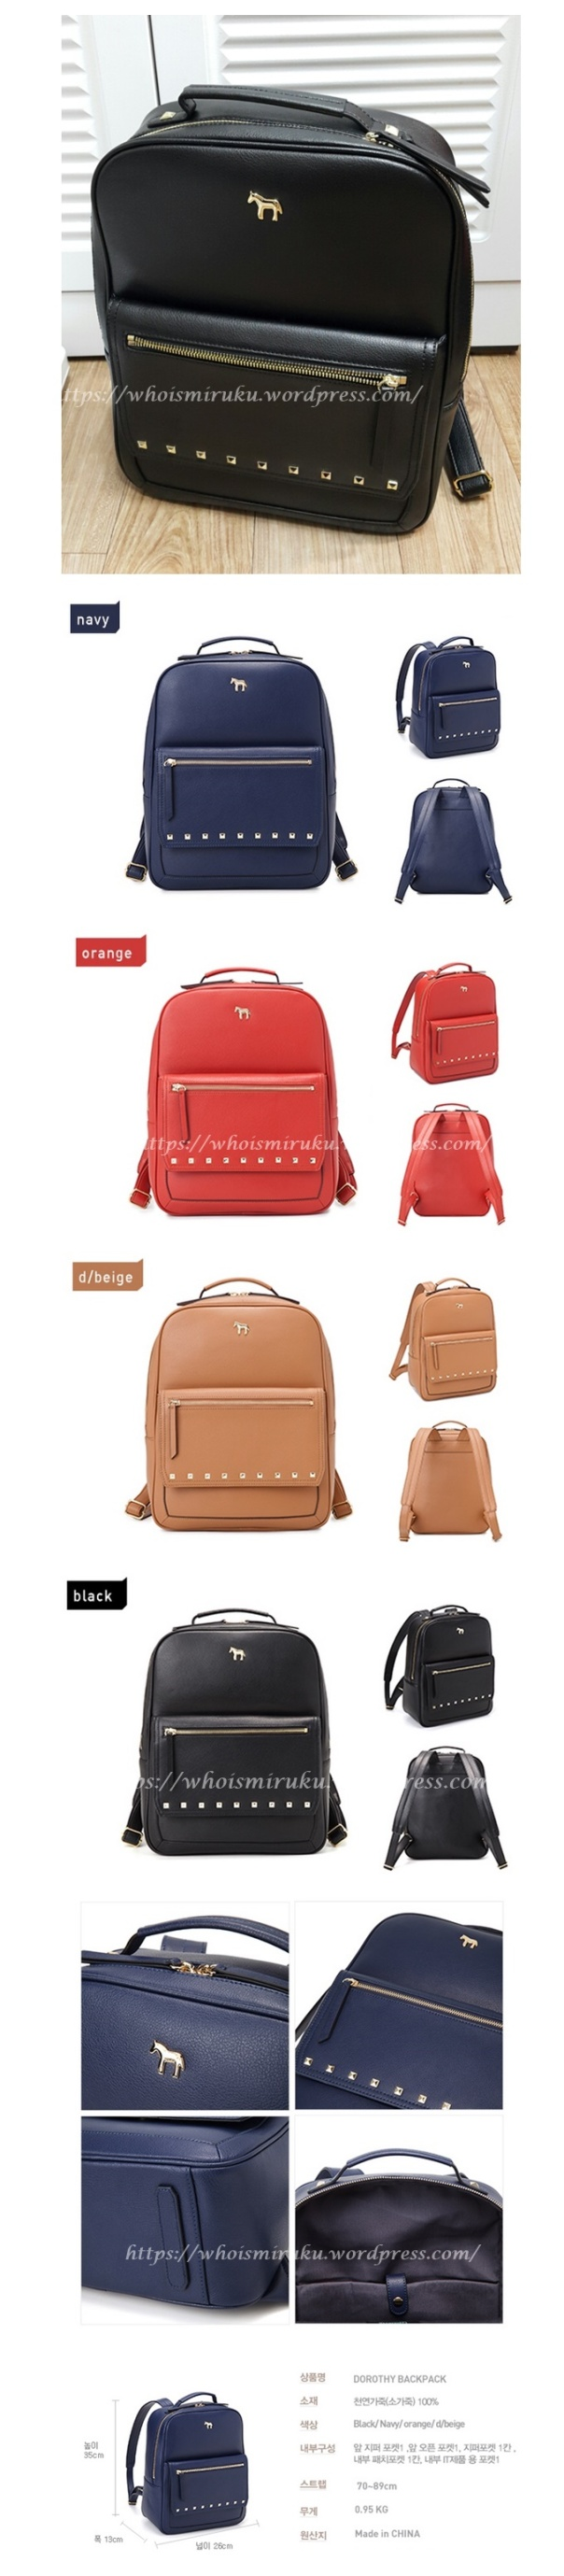 doroty-1-BACKPACK-2-1